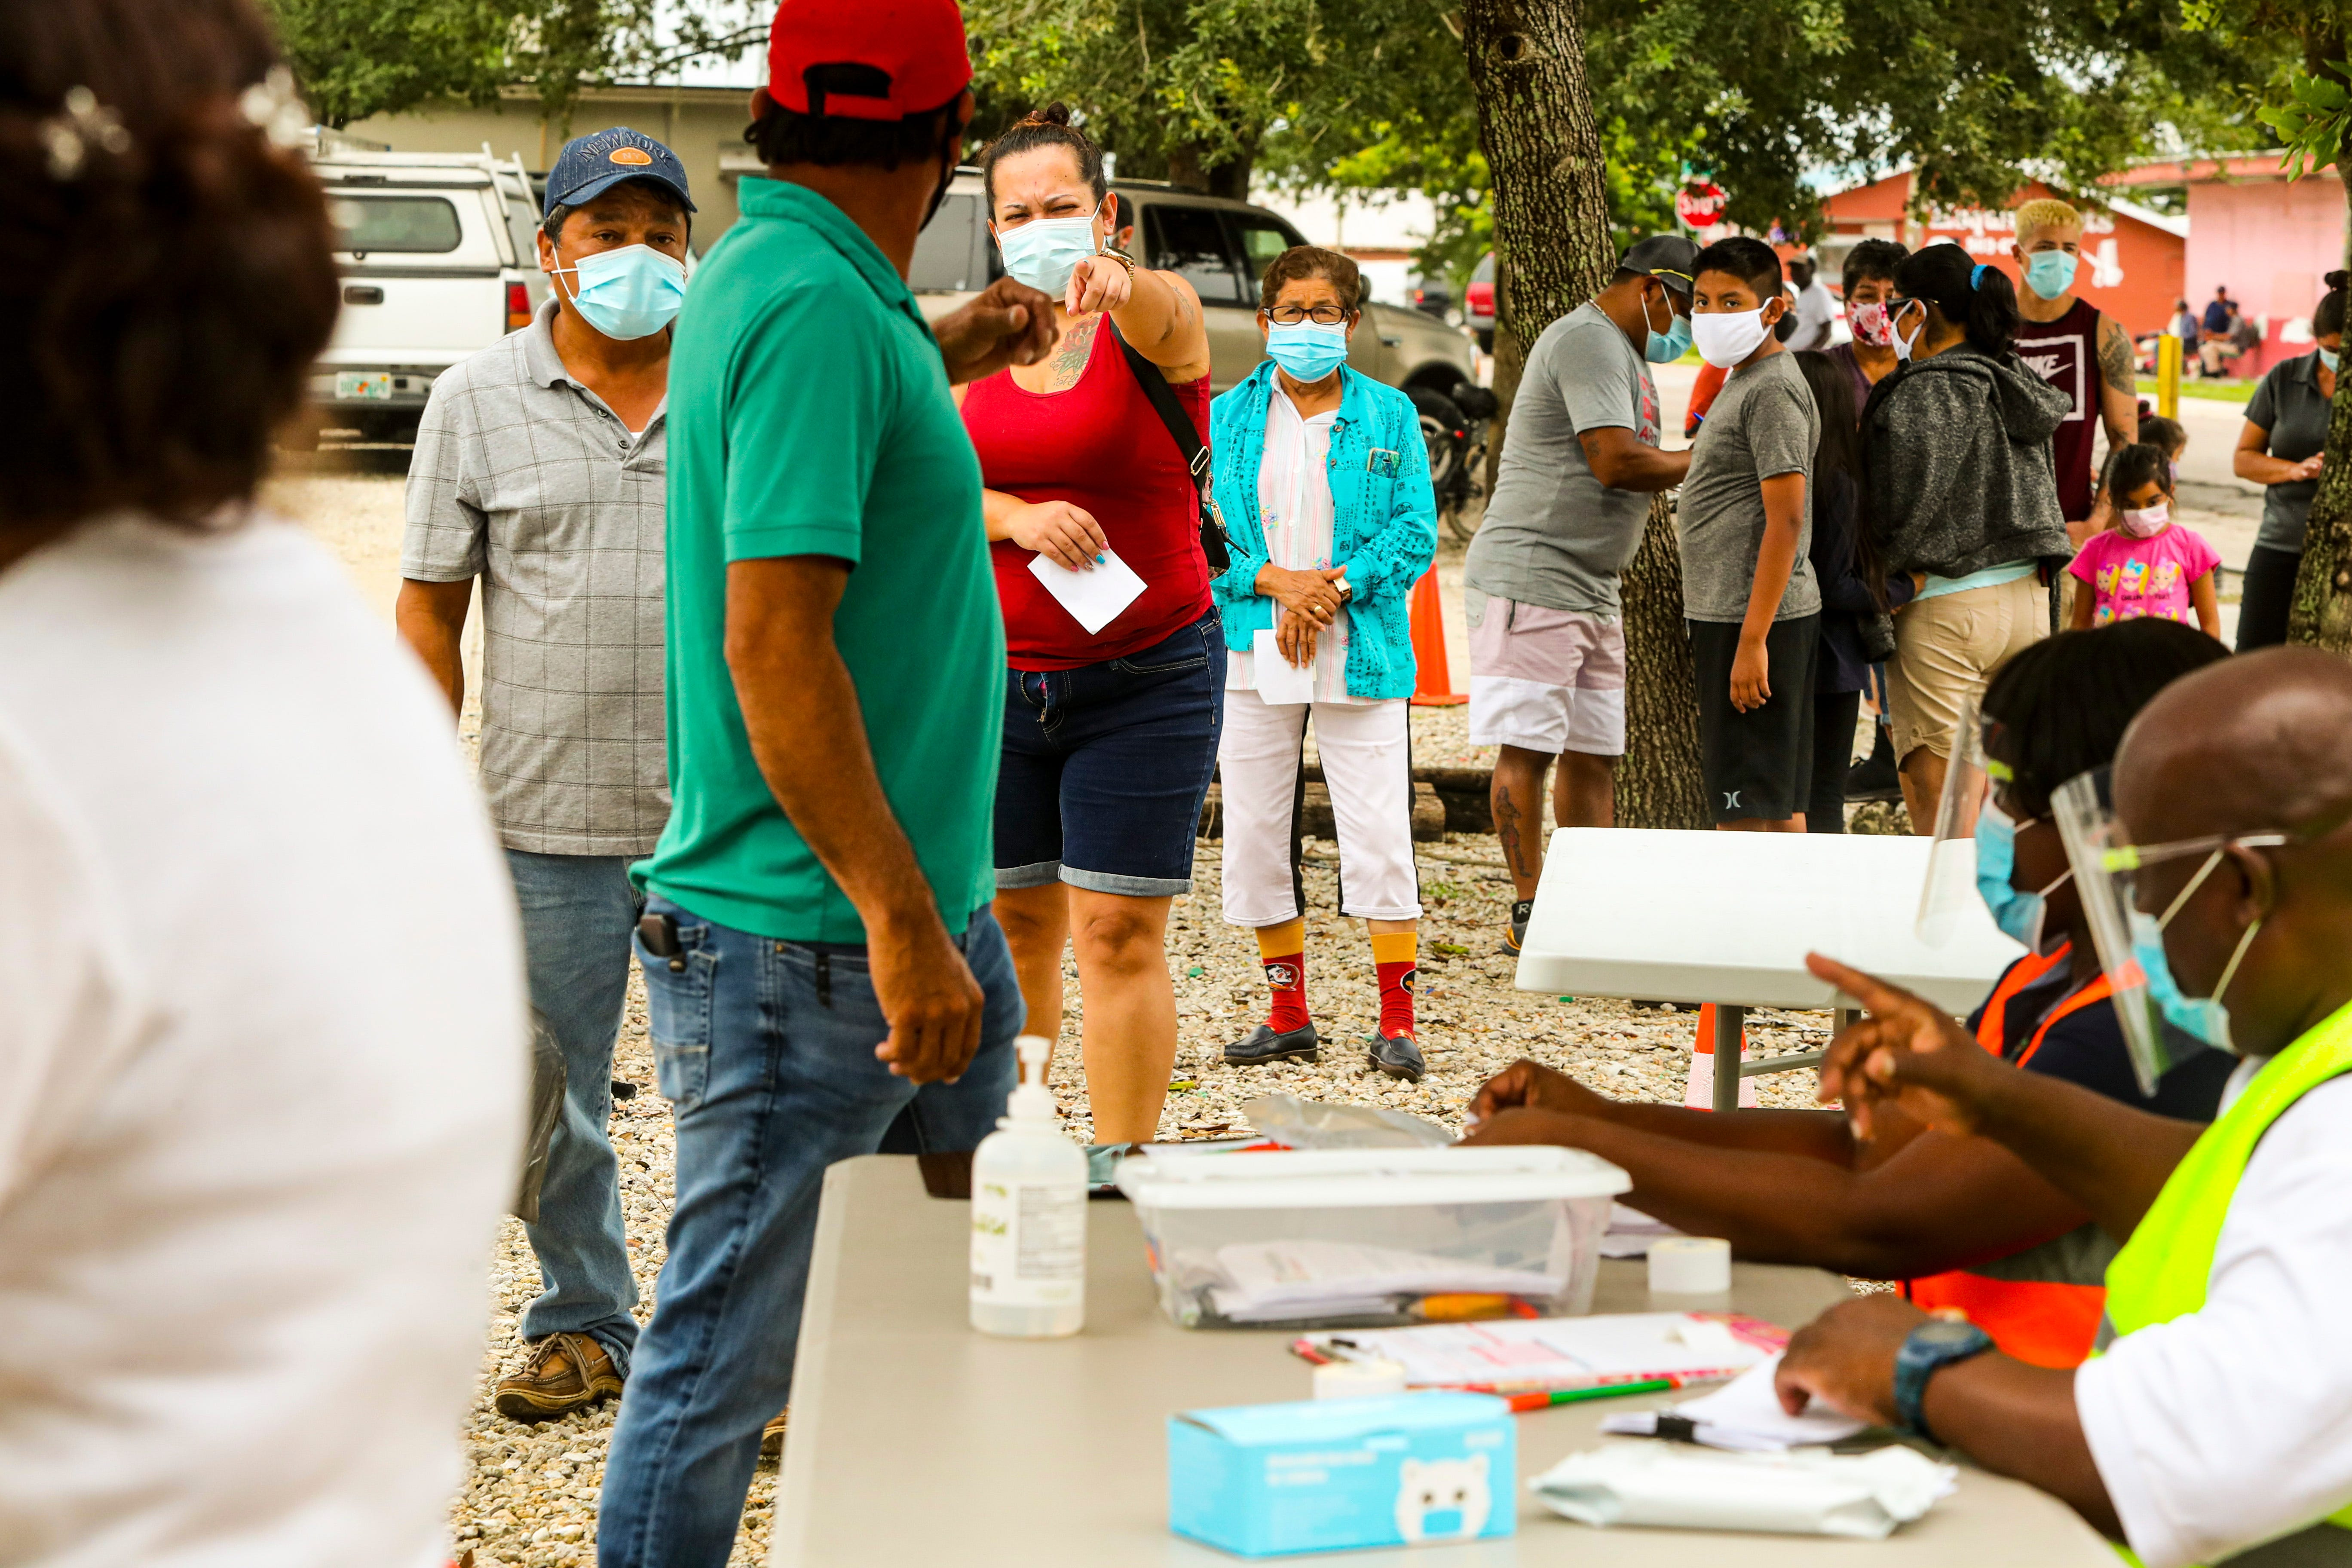 A busy COVID-19 testing event on Aug. 4, 2021, in Immokalee, Florida.